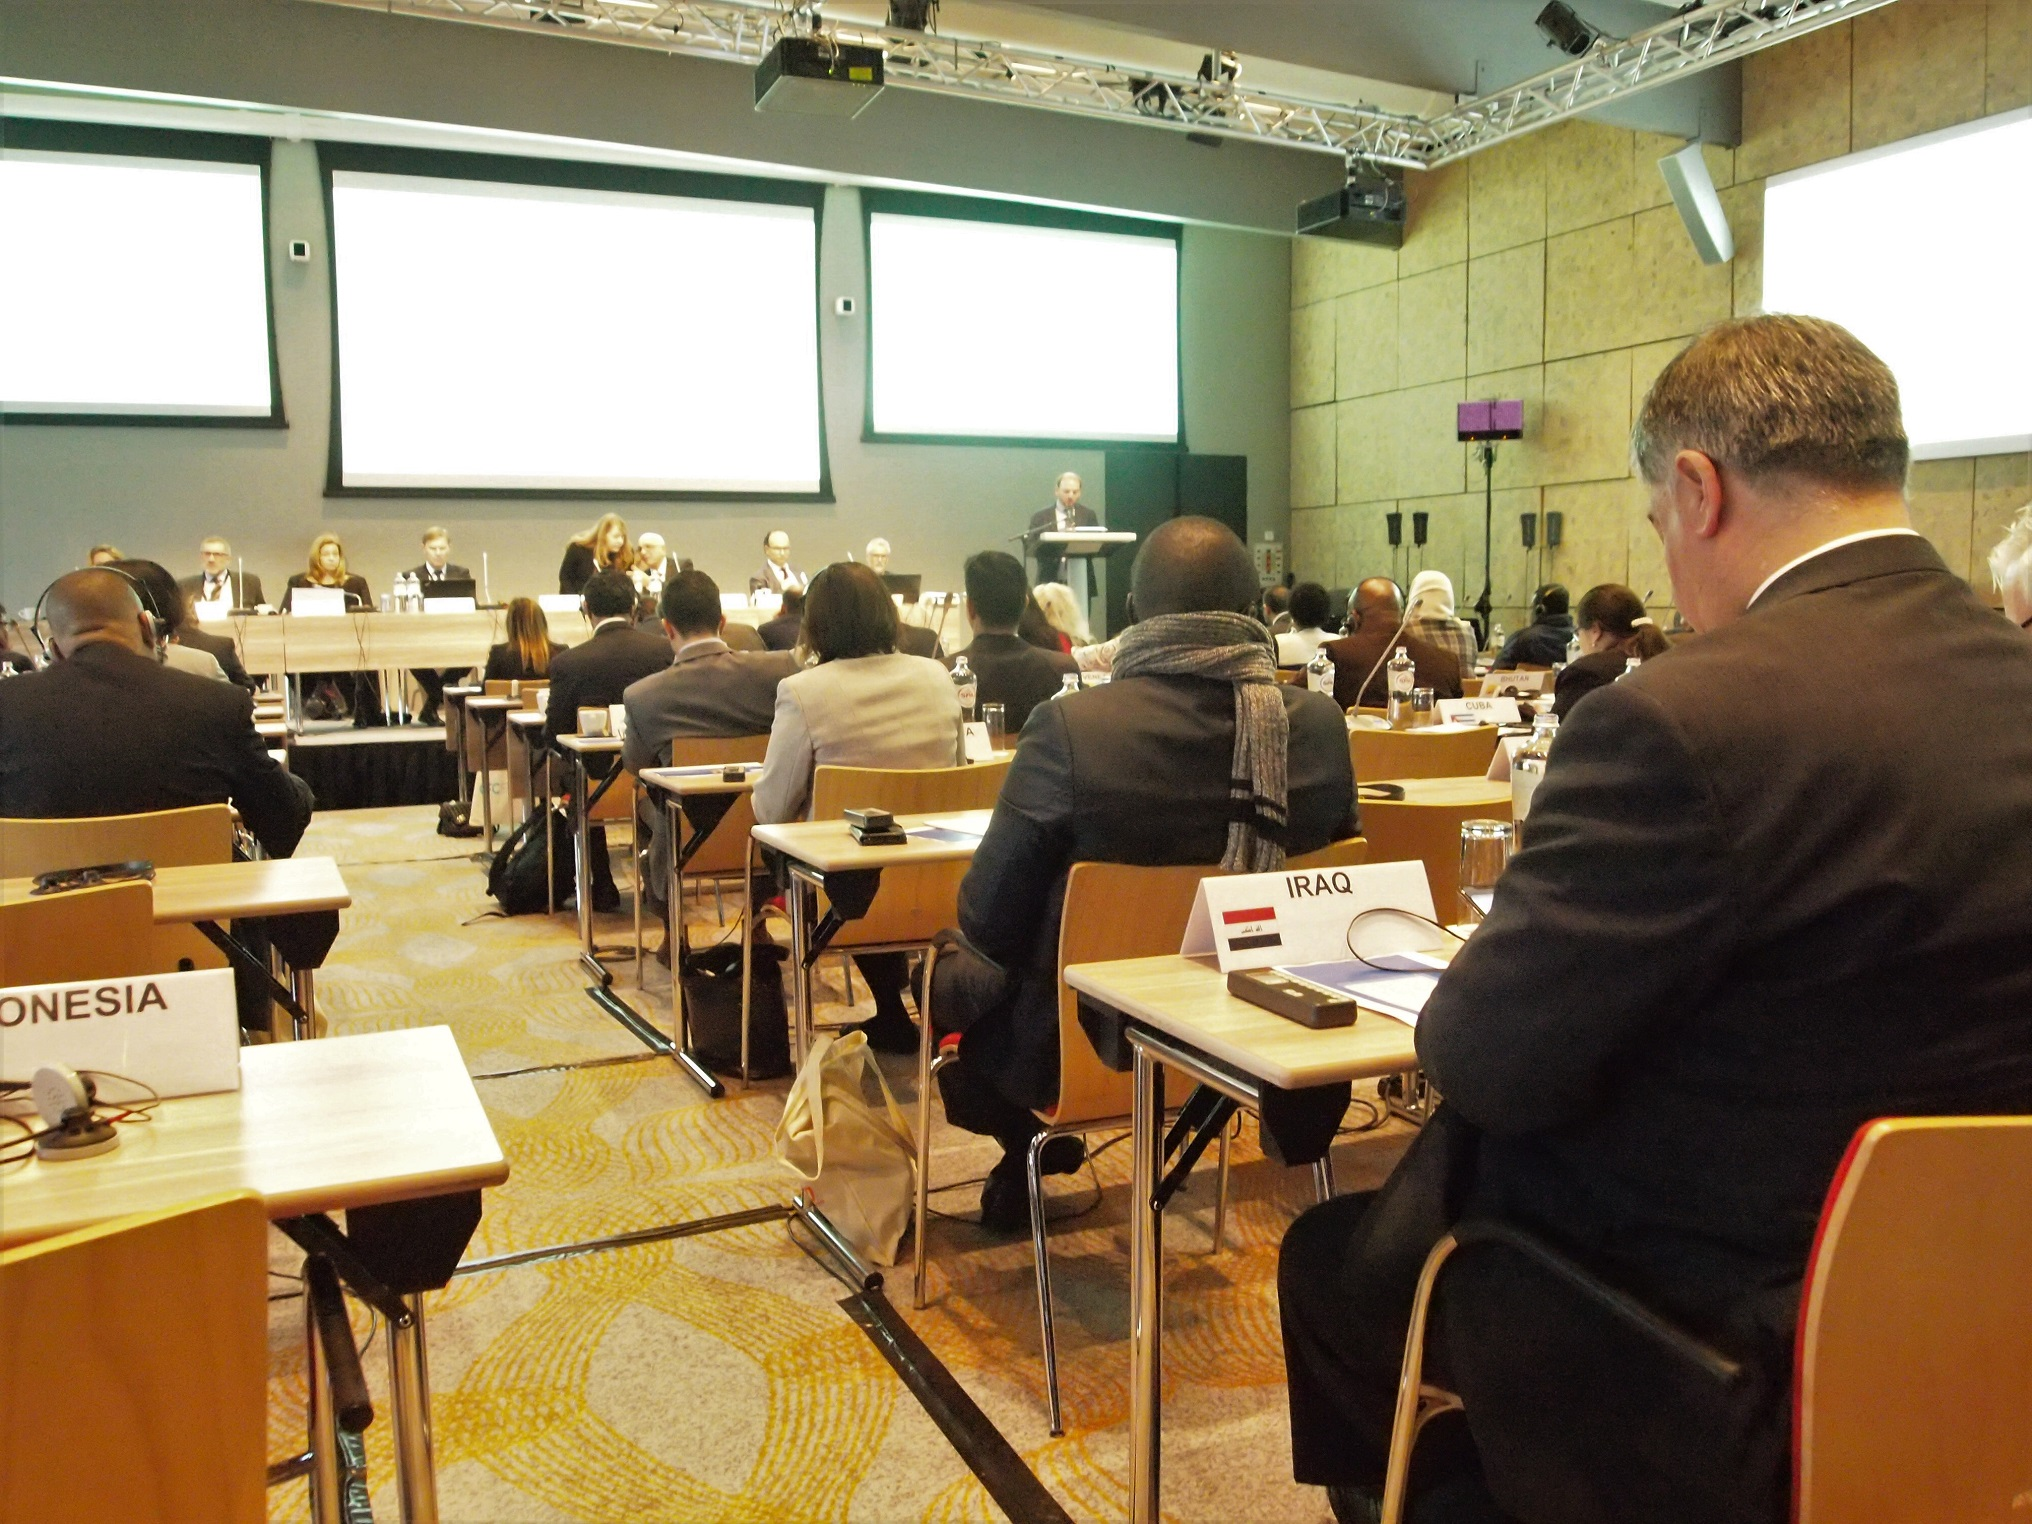 33rd Annual Meeting of the Governing Council